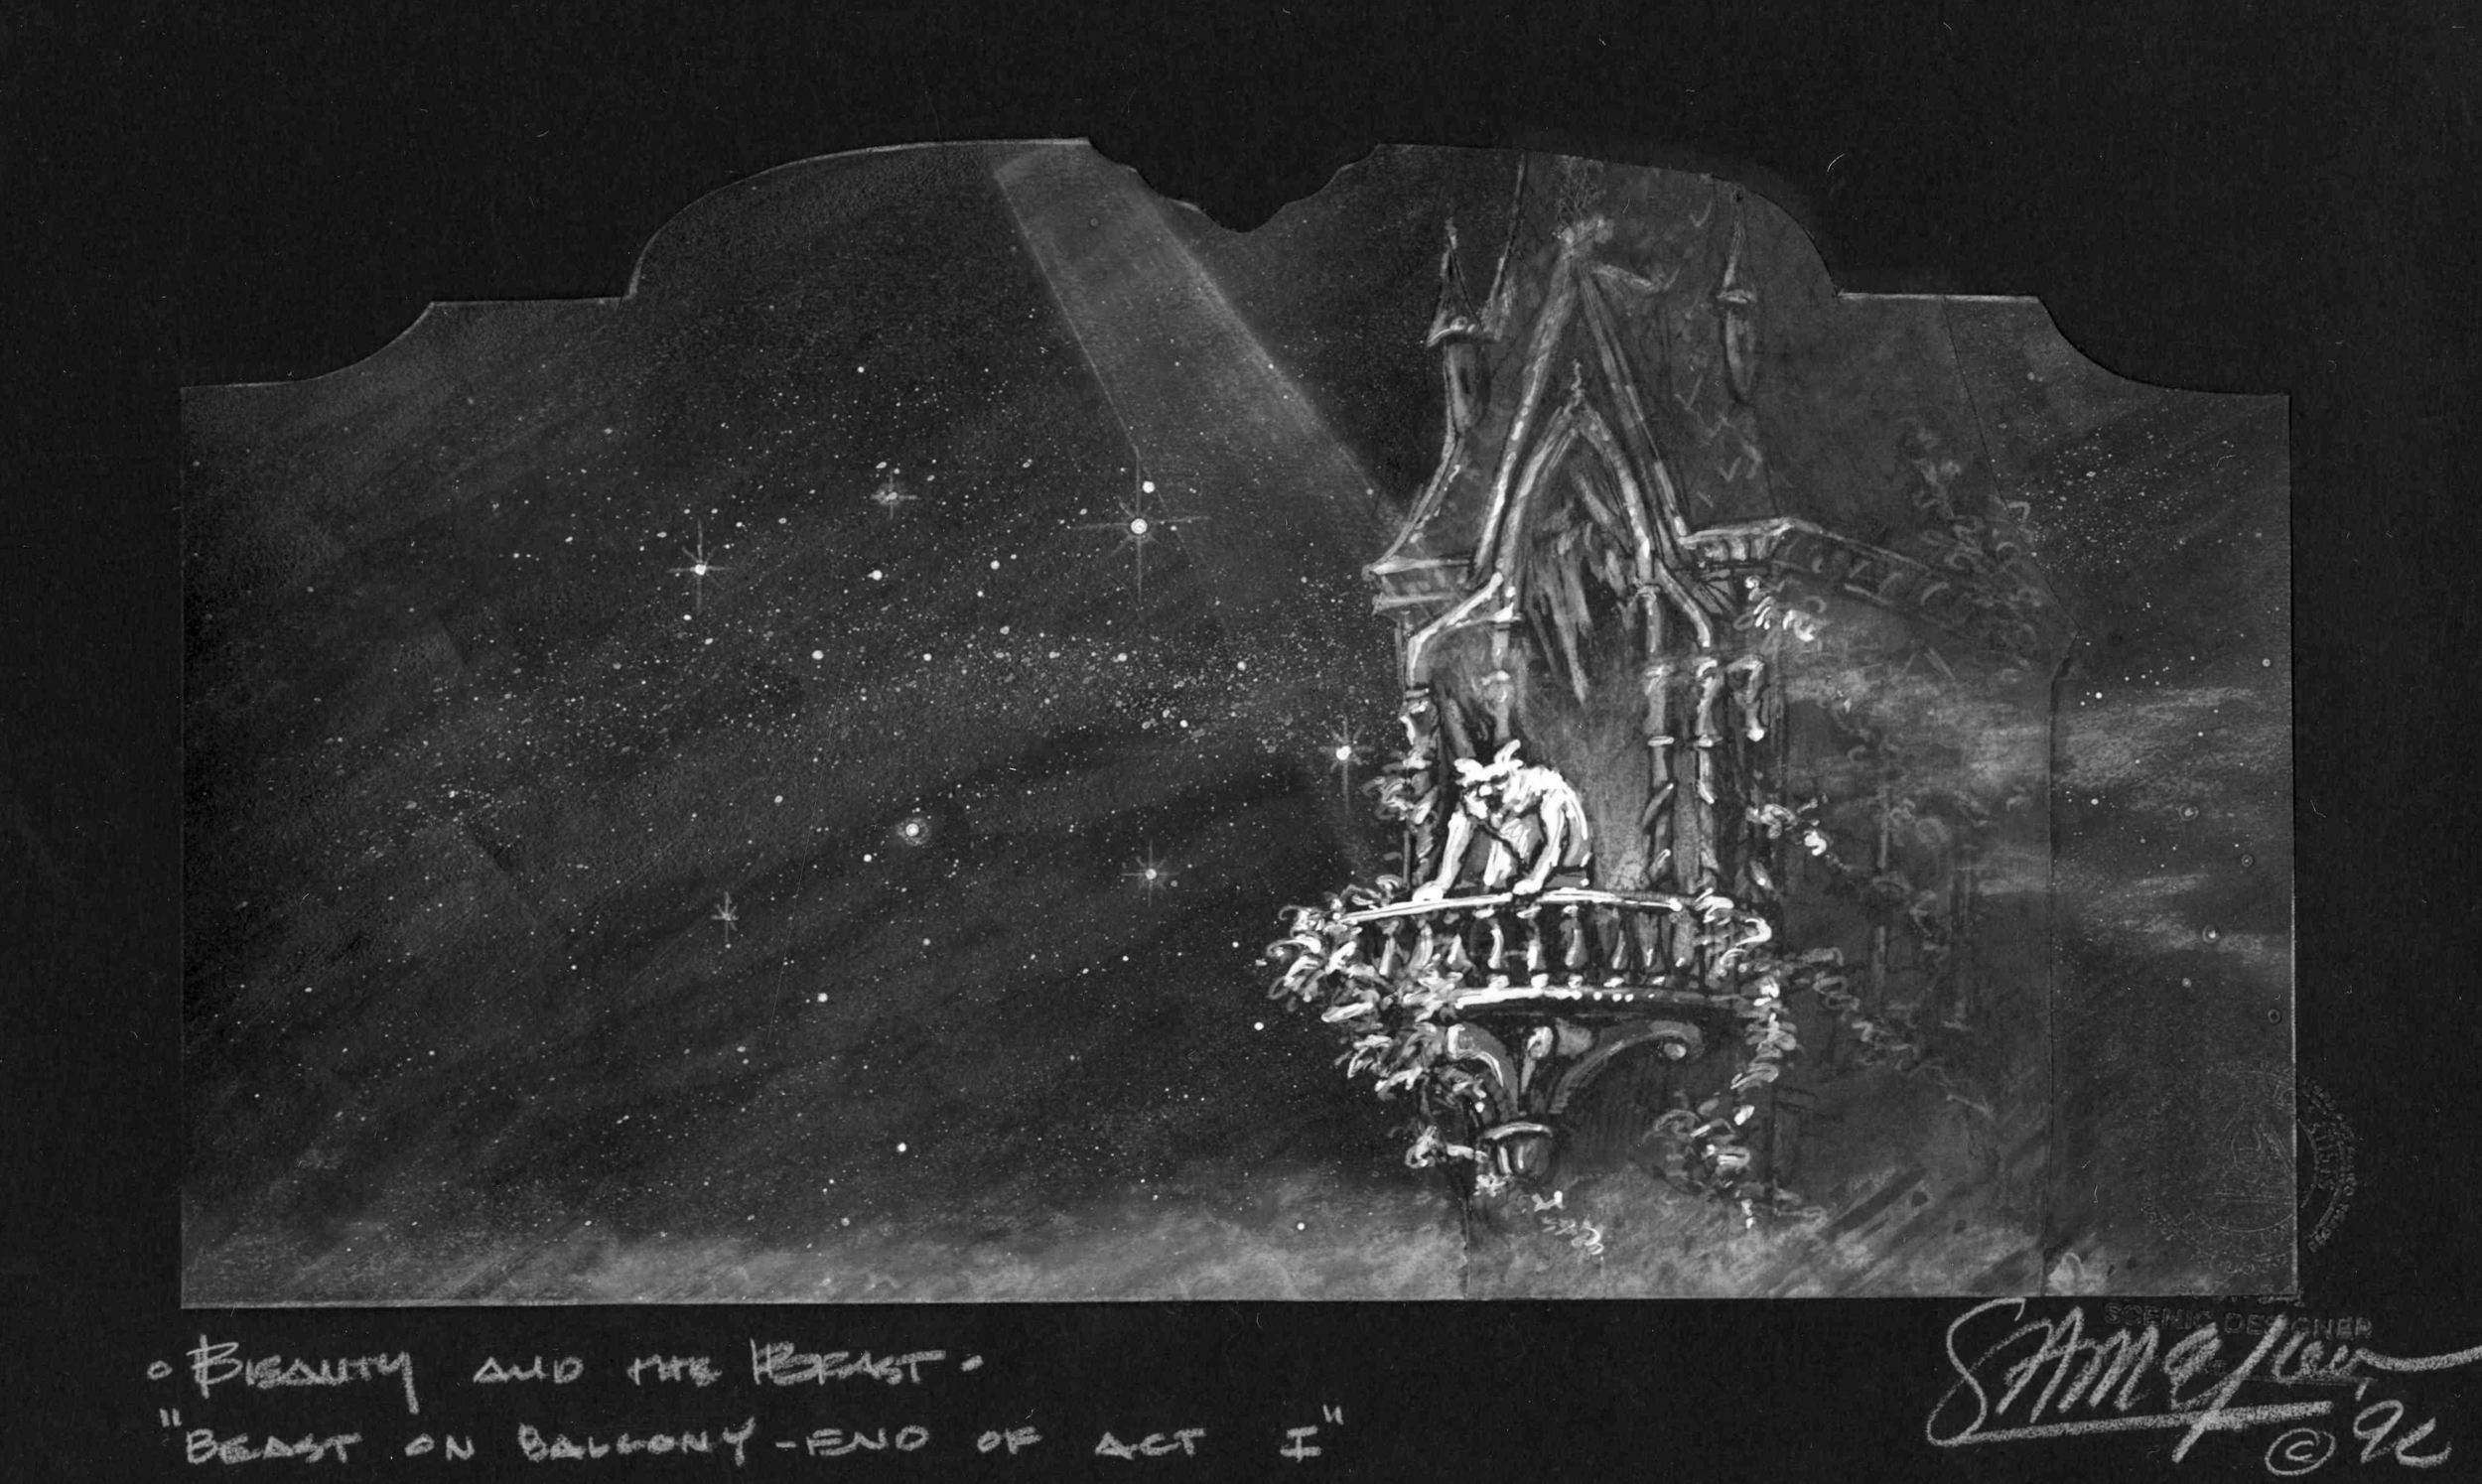 End of Act I.B&W Concept Rendering.Palace Theatre NYC.